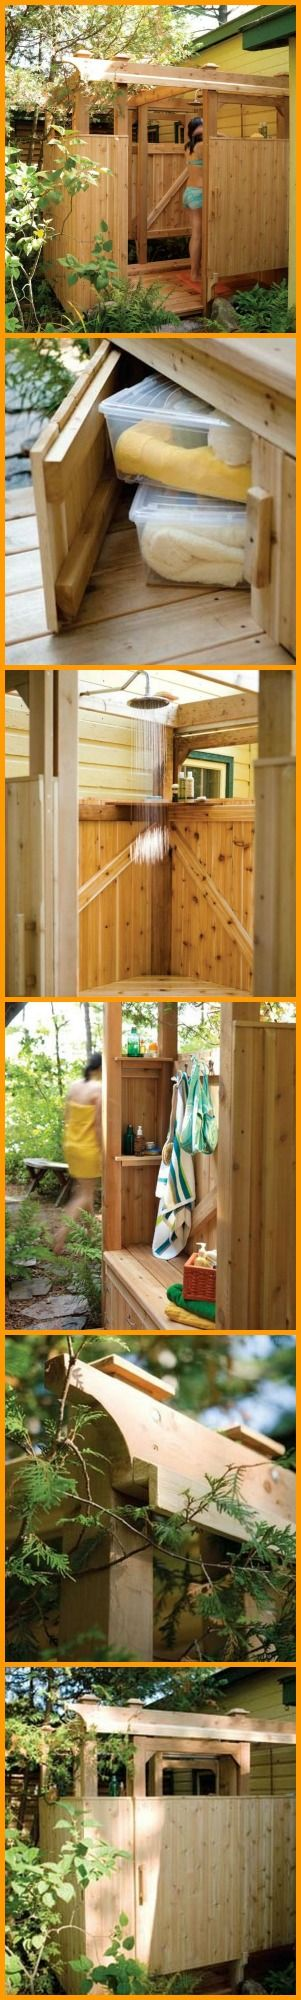 36 Best Images About Outdoor Showers On Pinterest